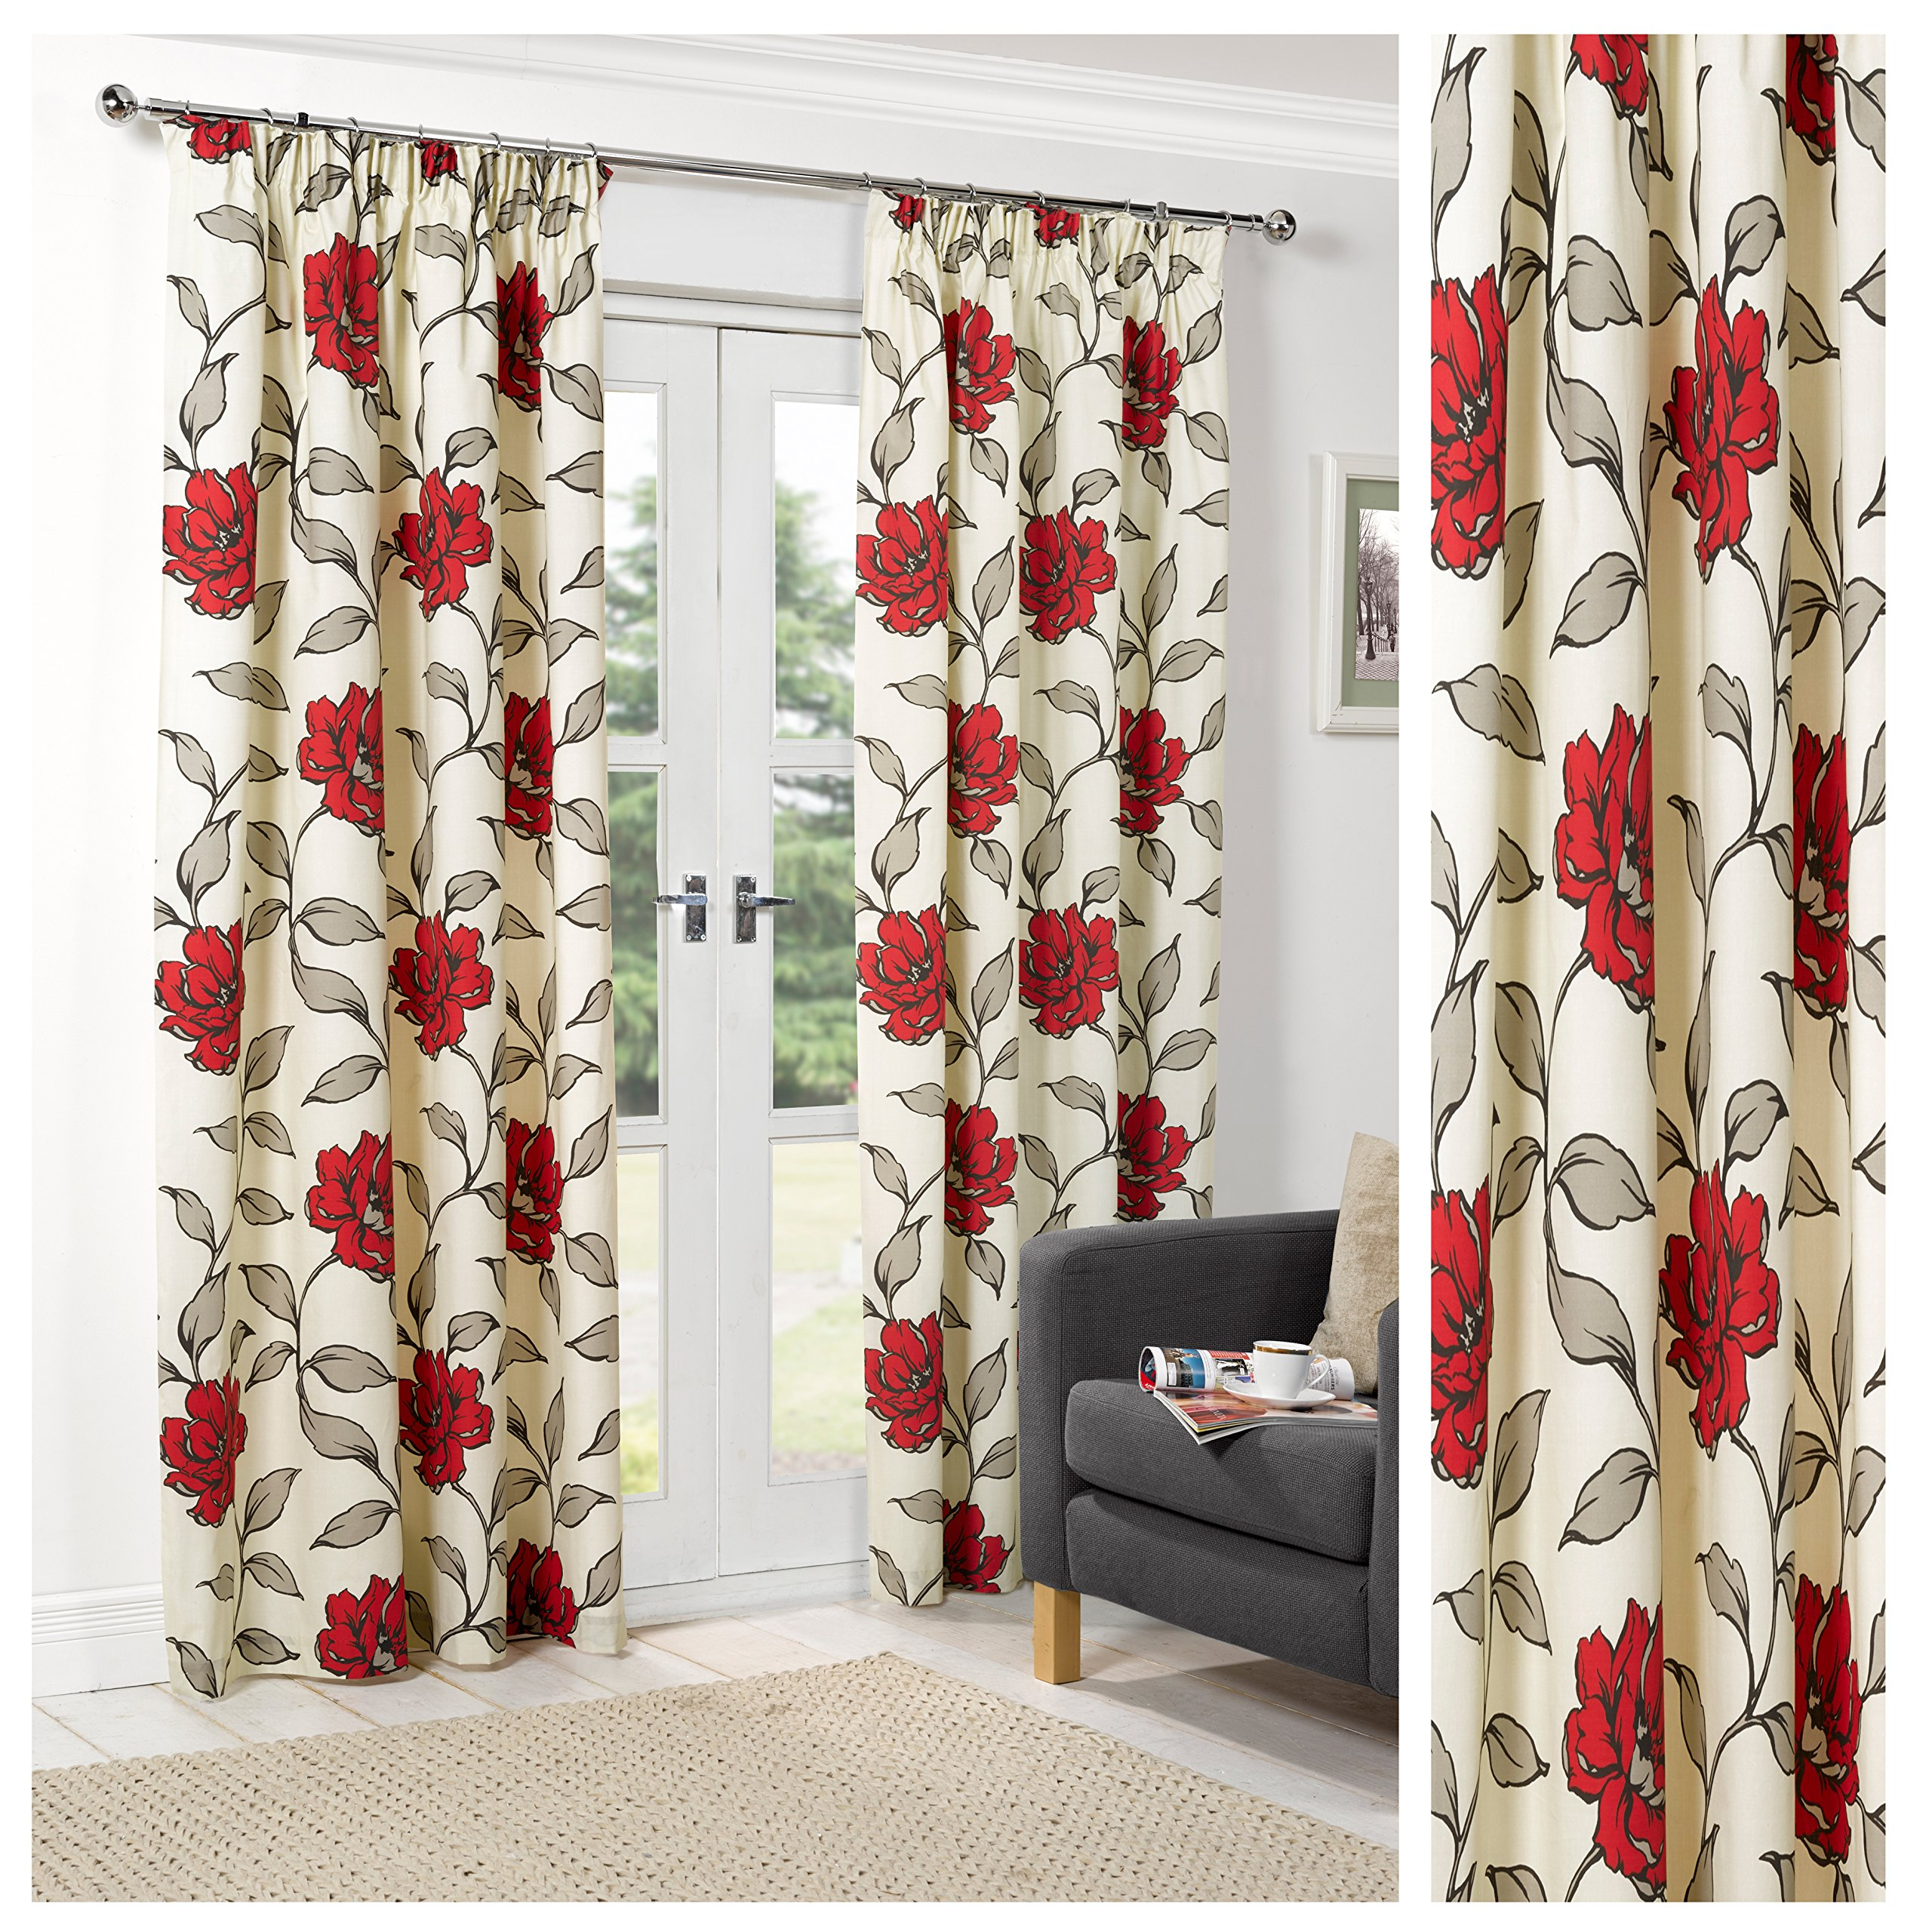 Floral Red Lightweight Pencil Pleat Tape Top Polyester Lined Readymade Curtain Pair 66x72in167x182cm